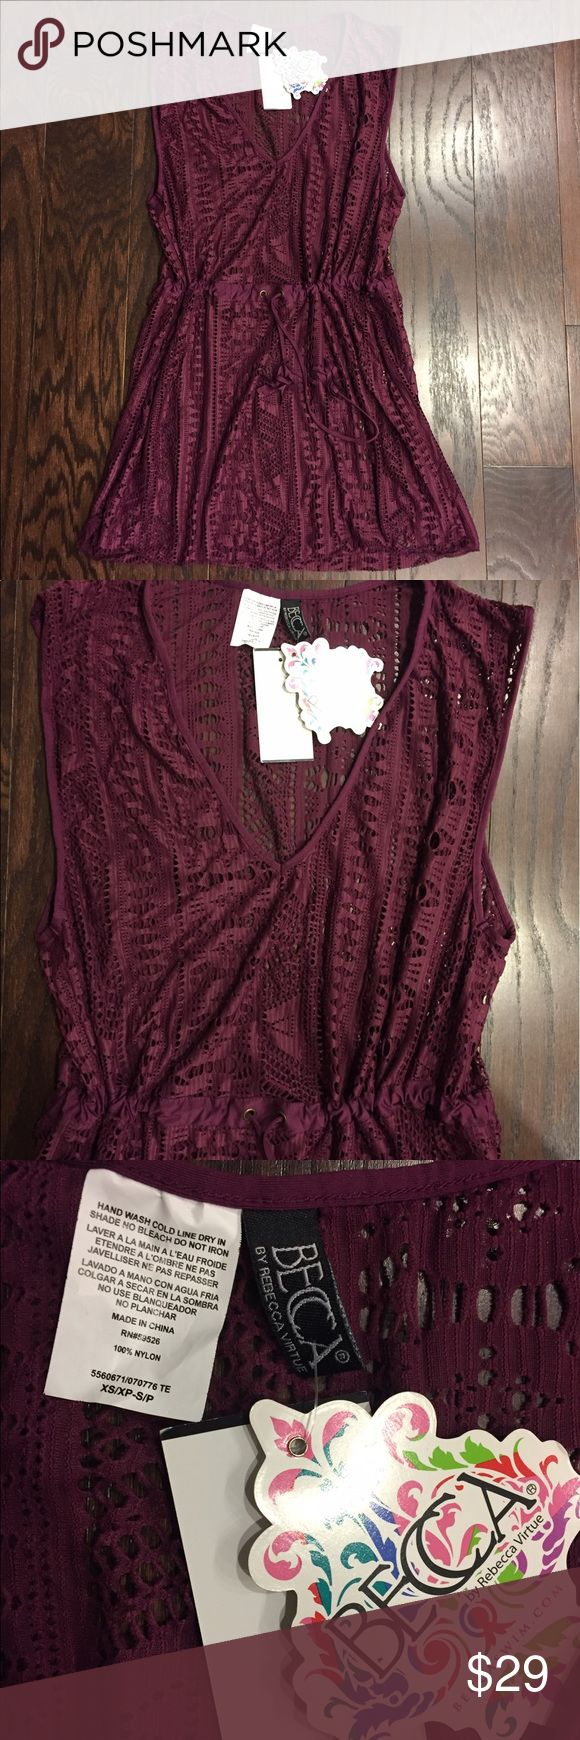 Becca Swim cover up, XS/S. NWT Becca by Rebecca Virtue Swim cover up. Burgundy crochet pattern as shown. Drawstring waist that ties in front. Size XS/S. New with tags! BECCA Swim Coverups